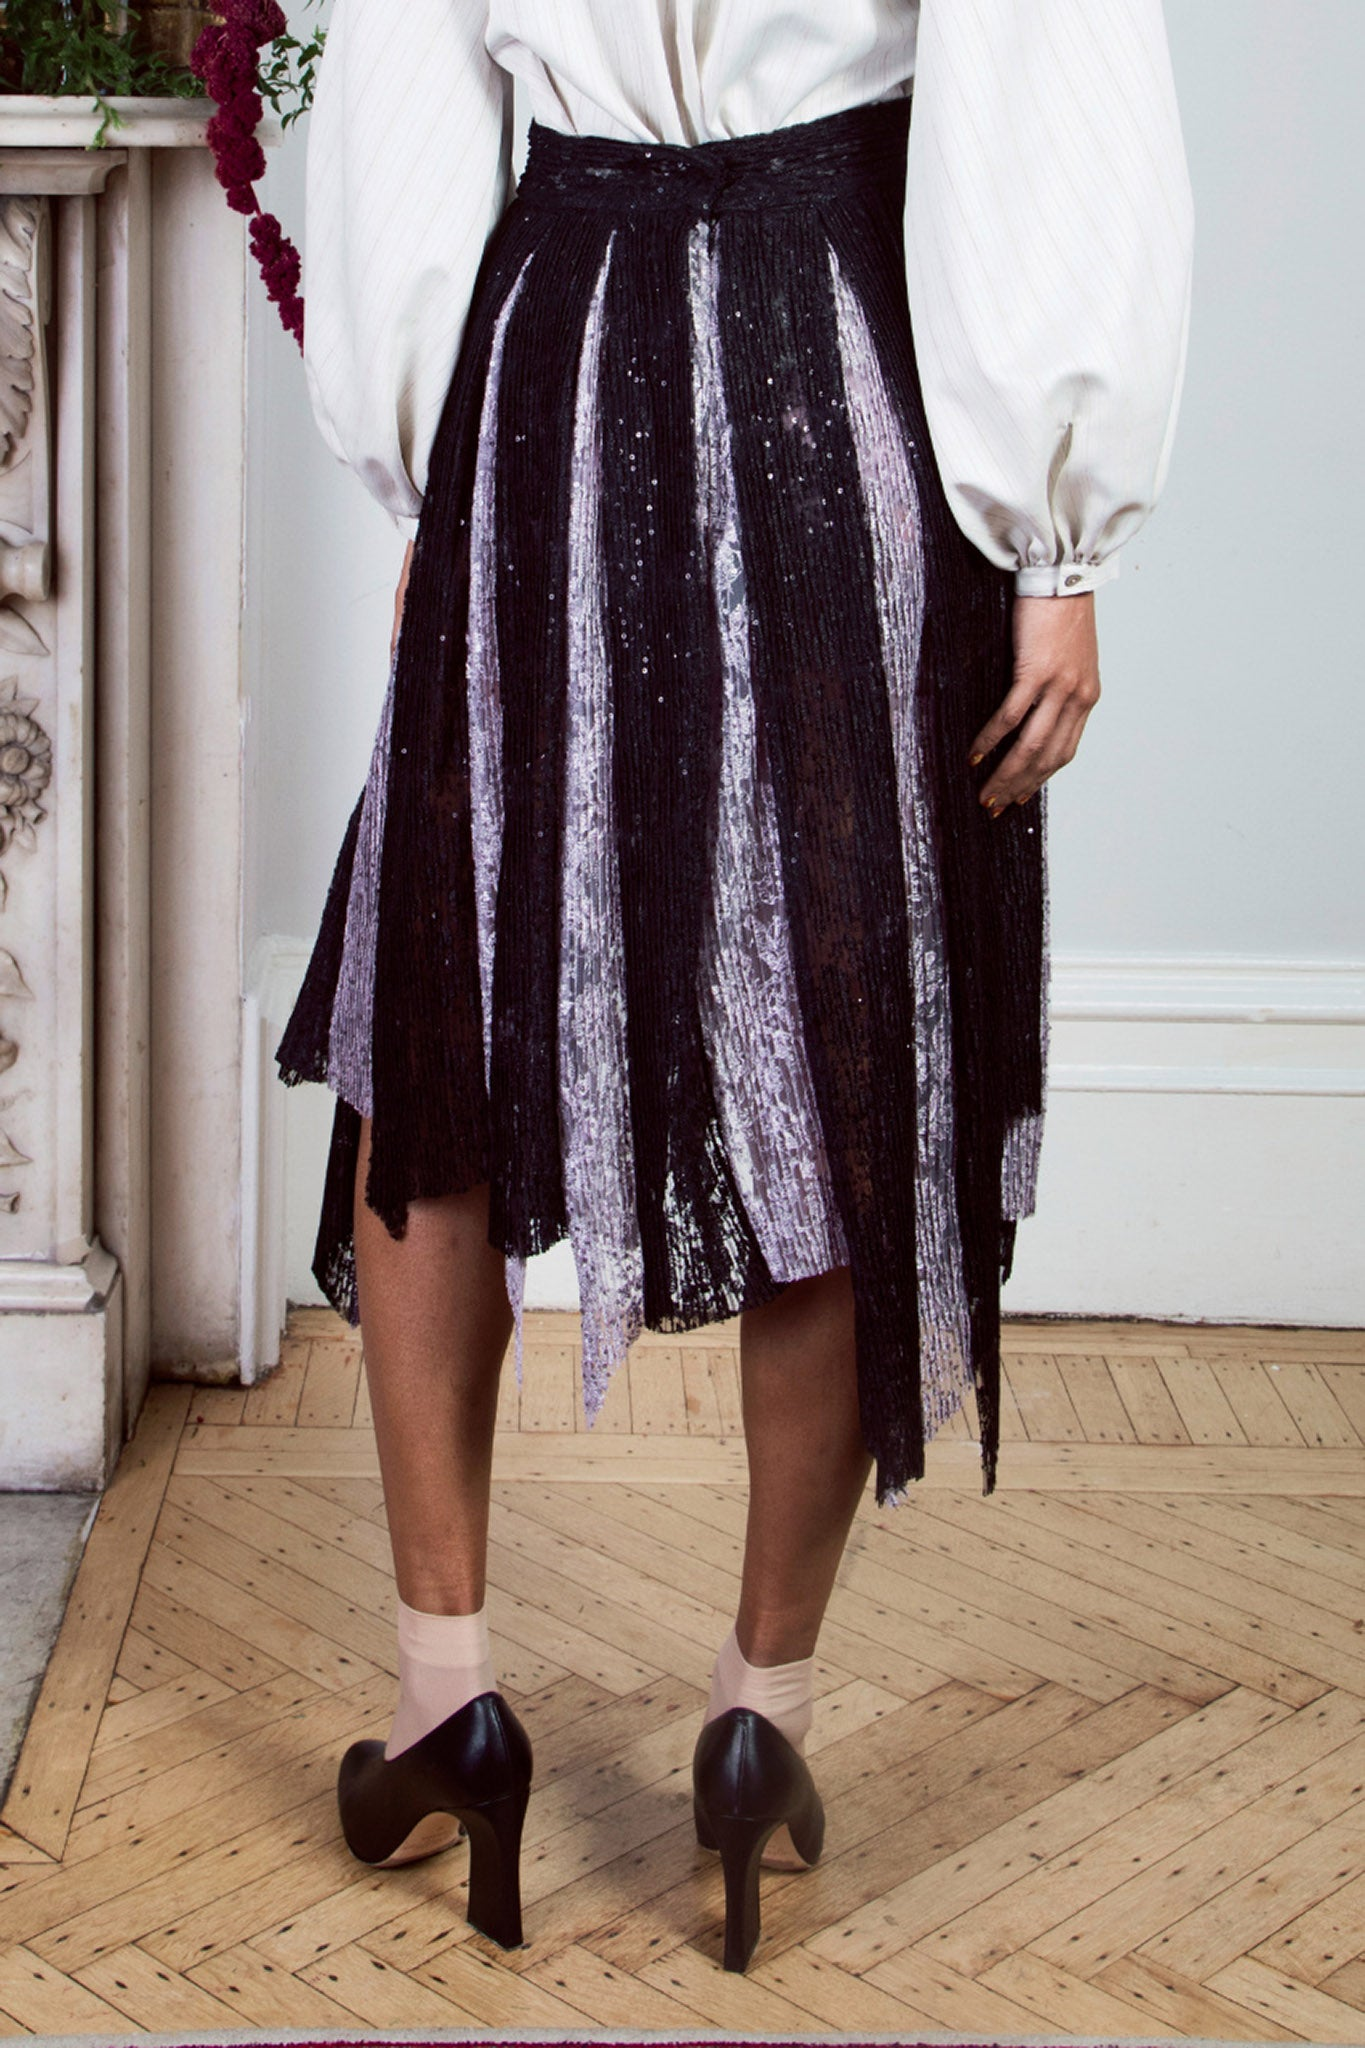 Glass Skirt